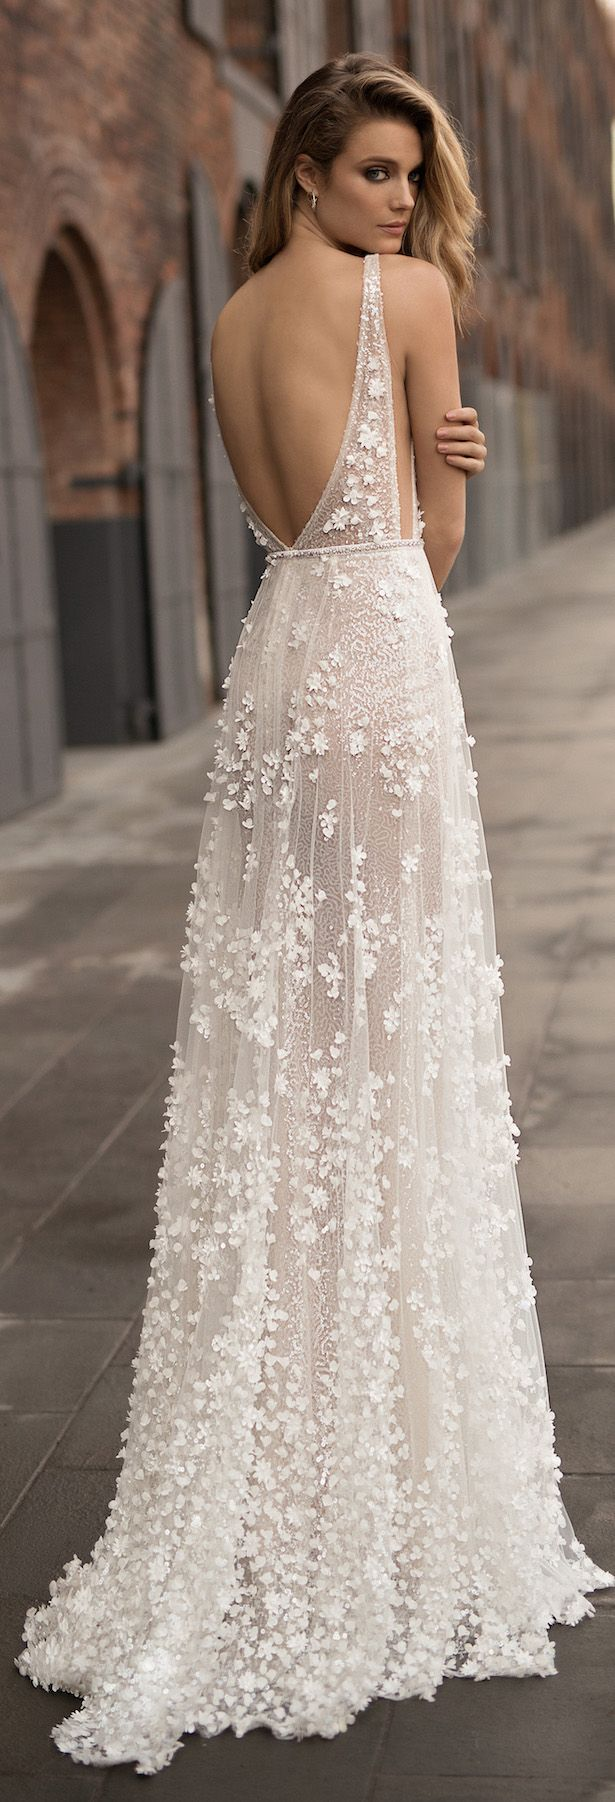 Breath-taking Boho Wedding Dresses Can't Miss